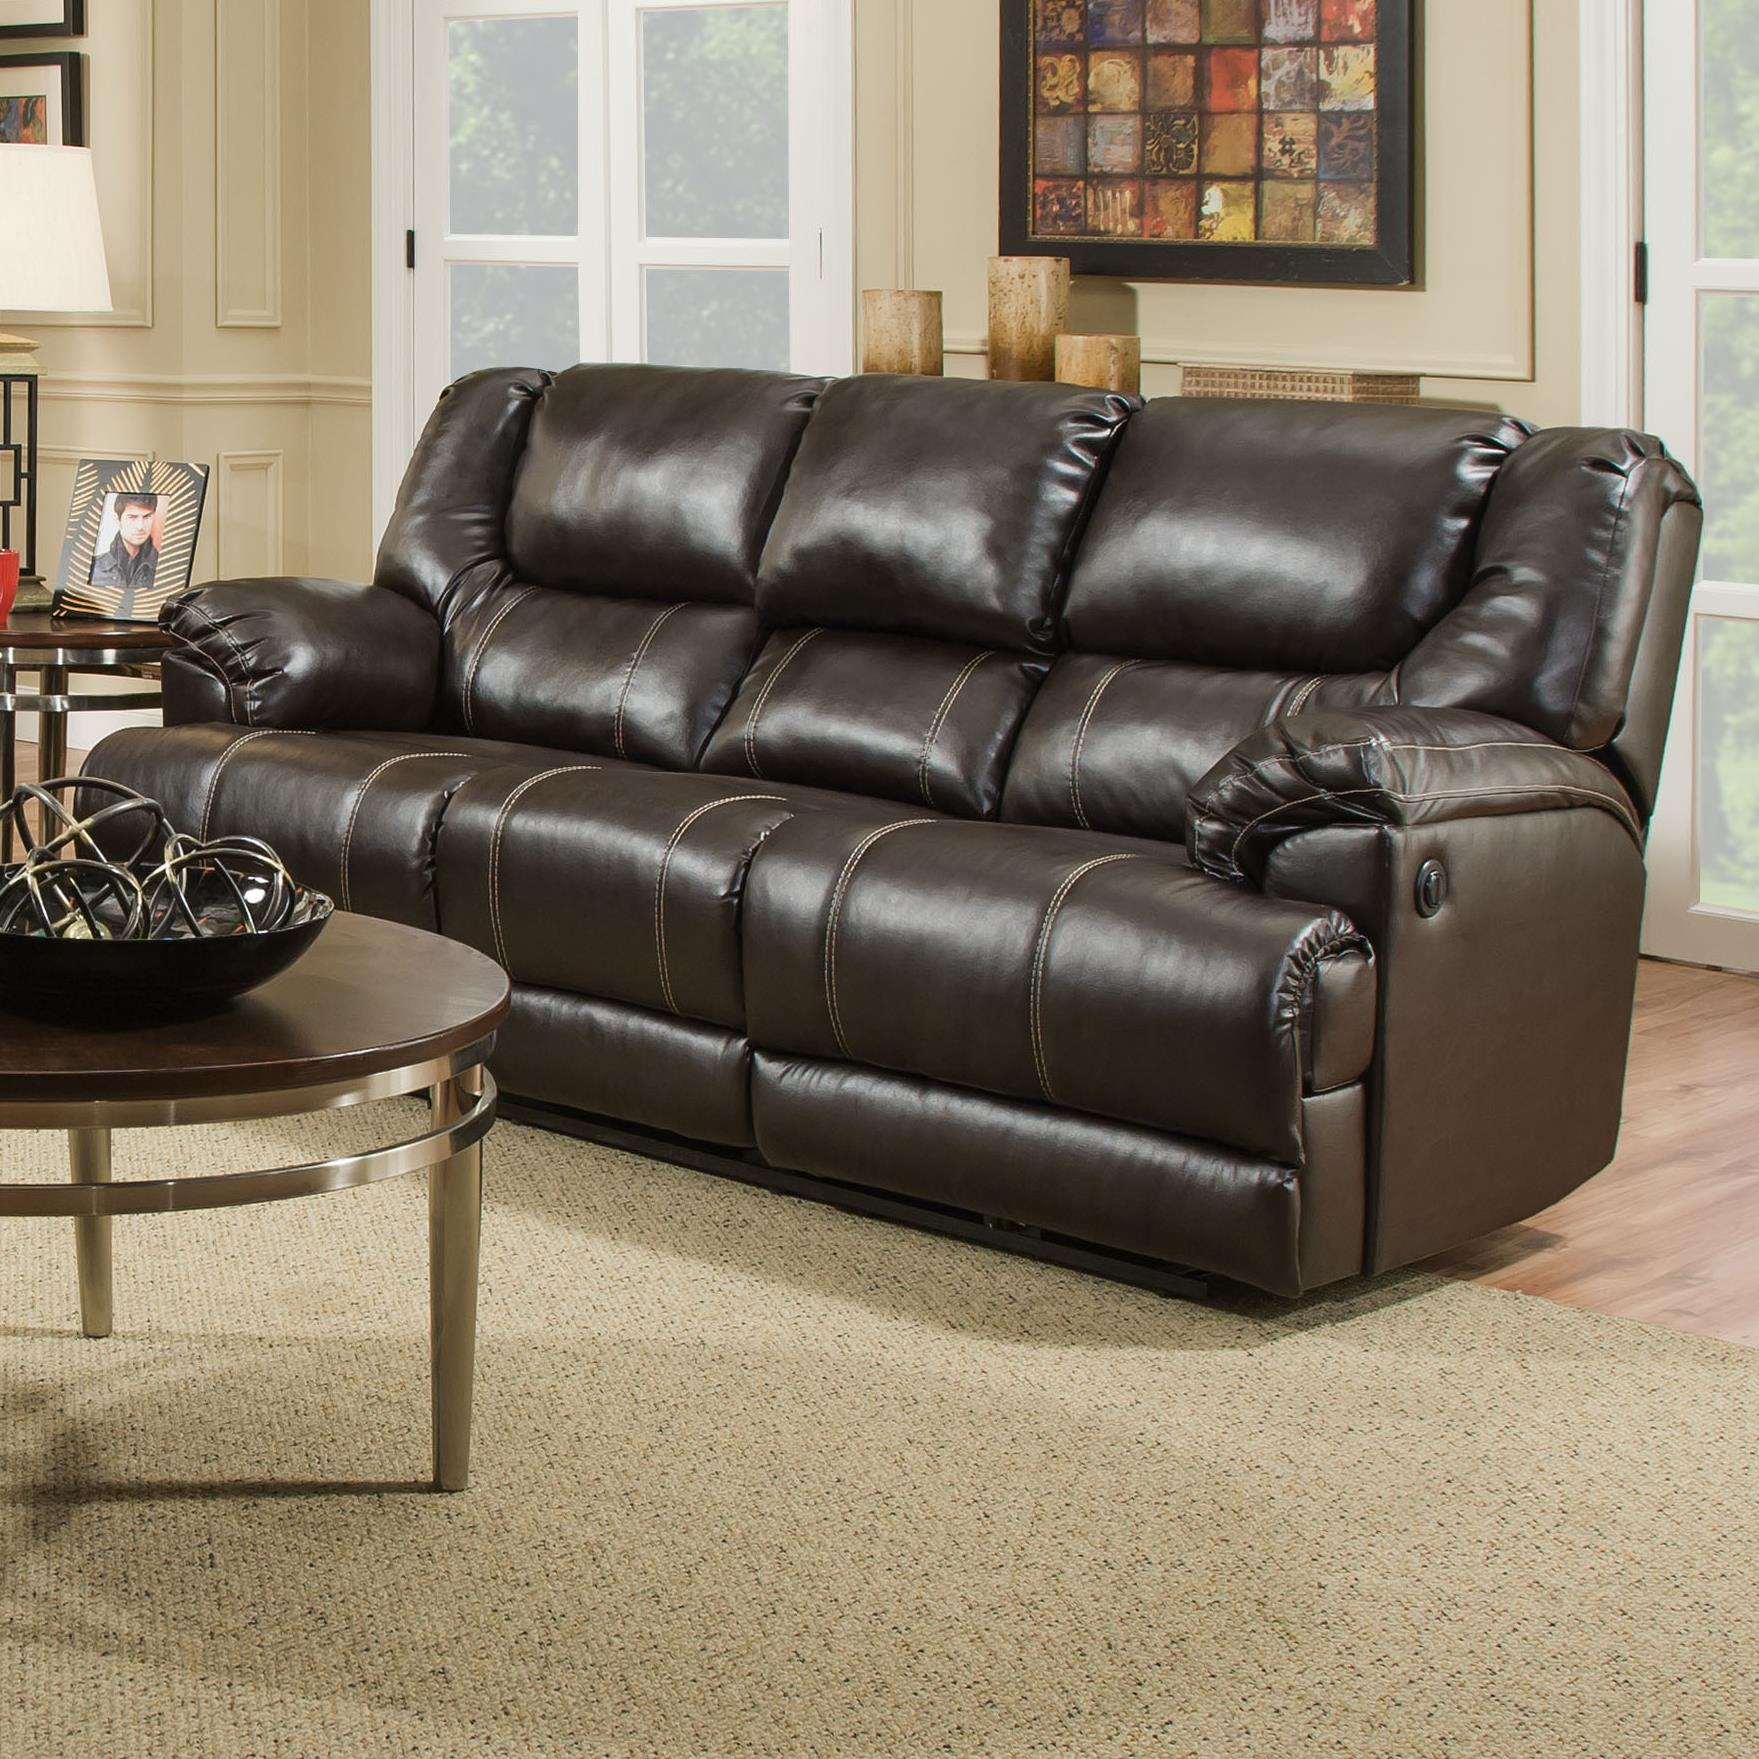 United Furniture Industries 50451 Casual Motion Sofa With Table Miskelly Furniture Reclining